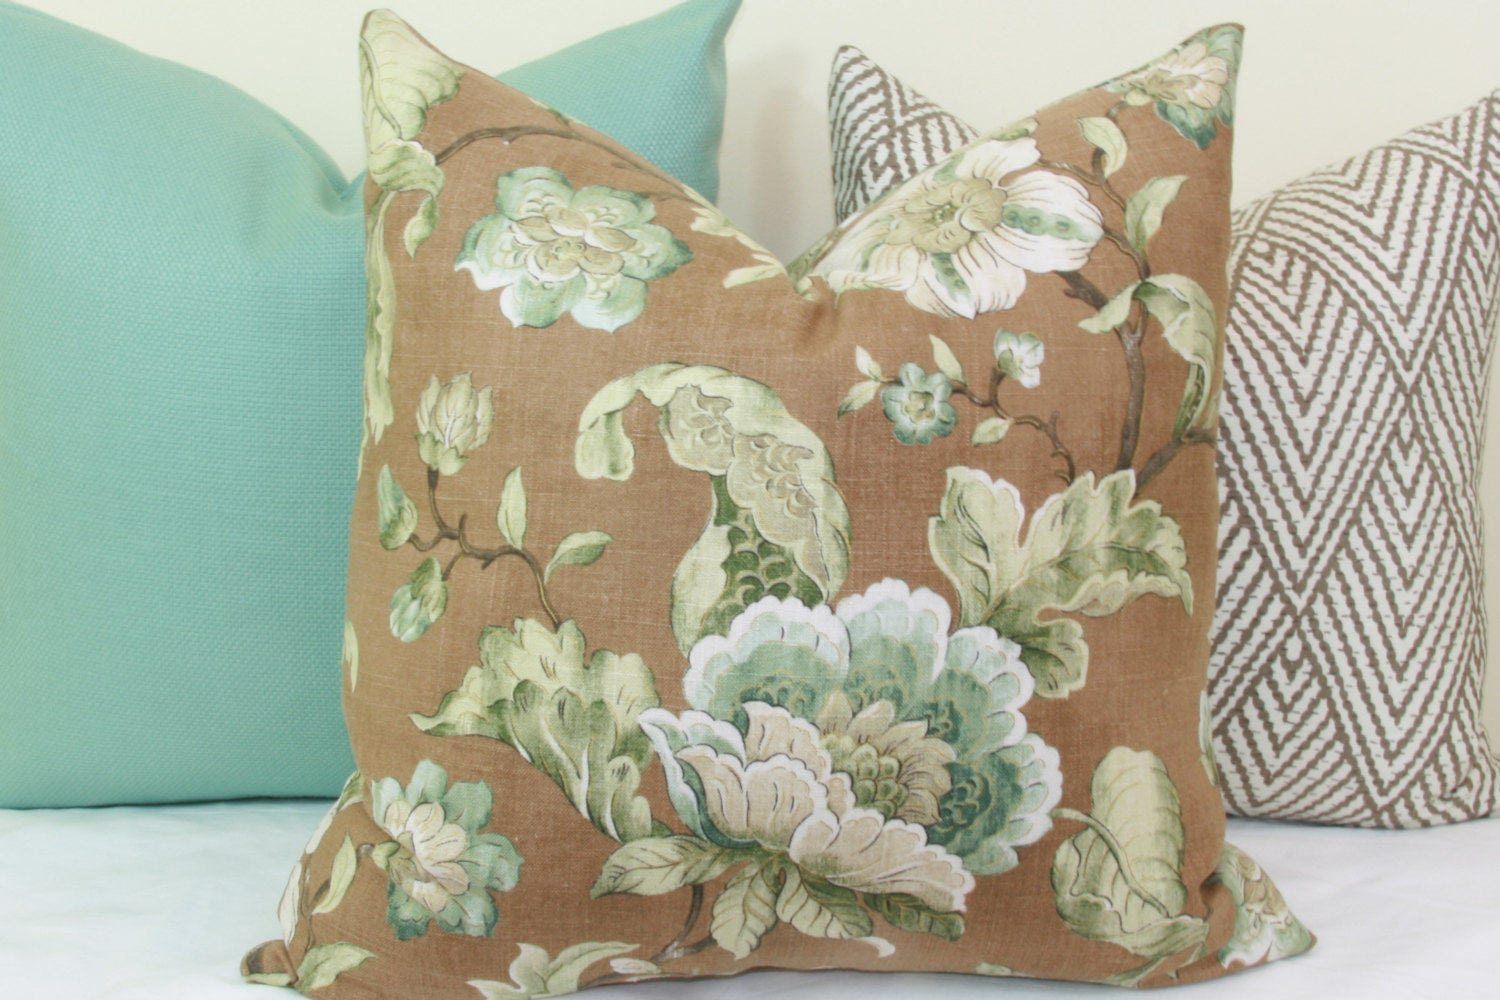 Teal And Brown Floral Decorative Throw Pillow Cover 18x18